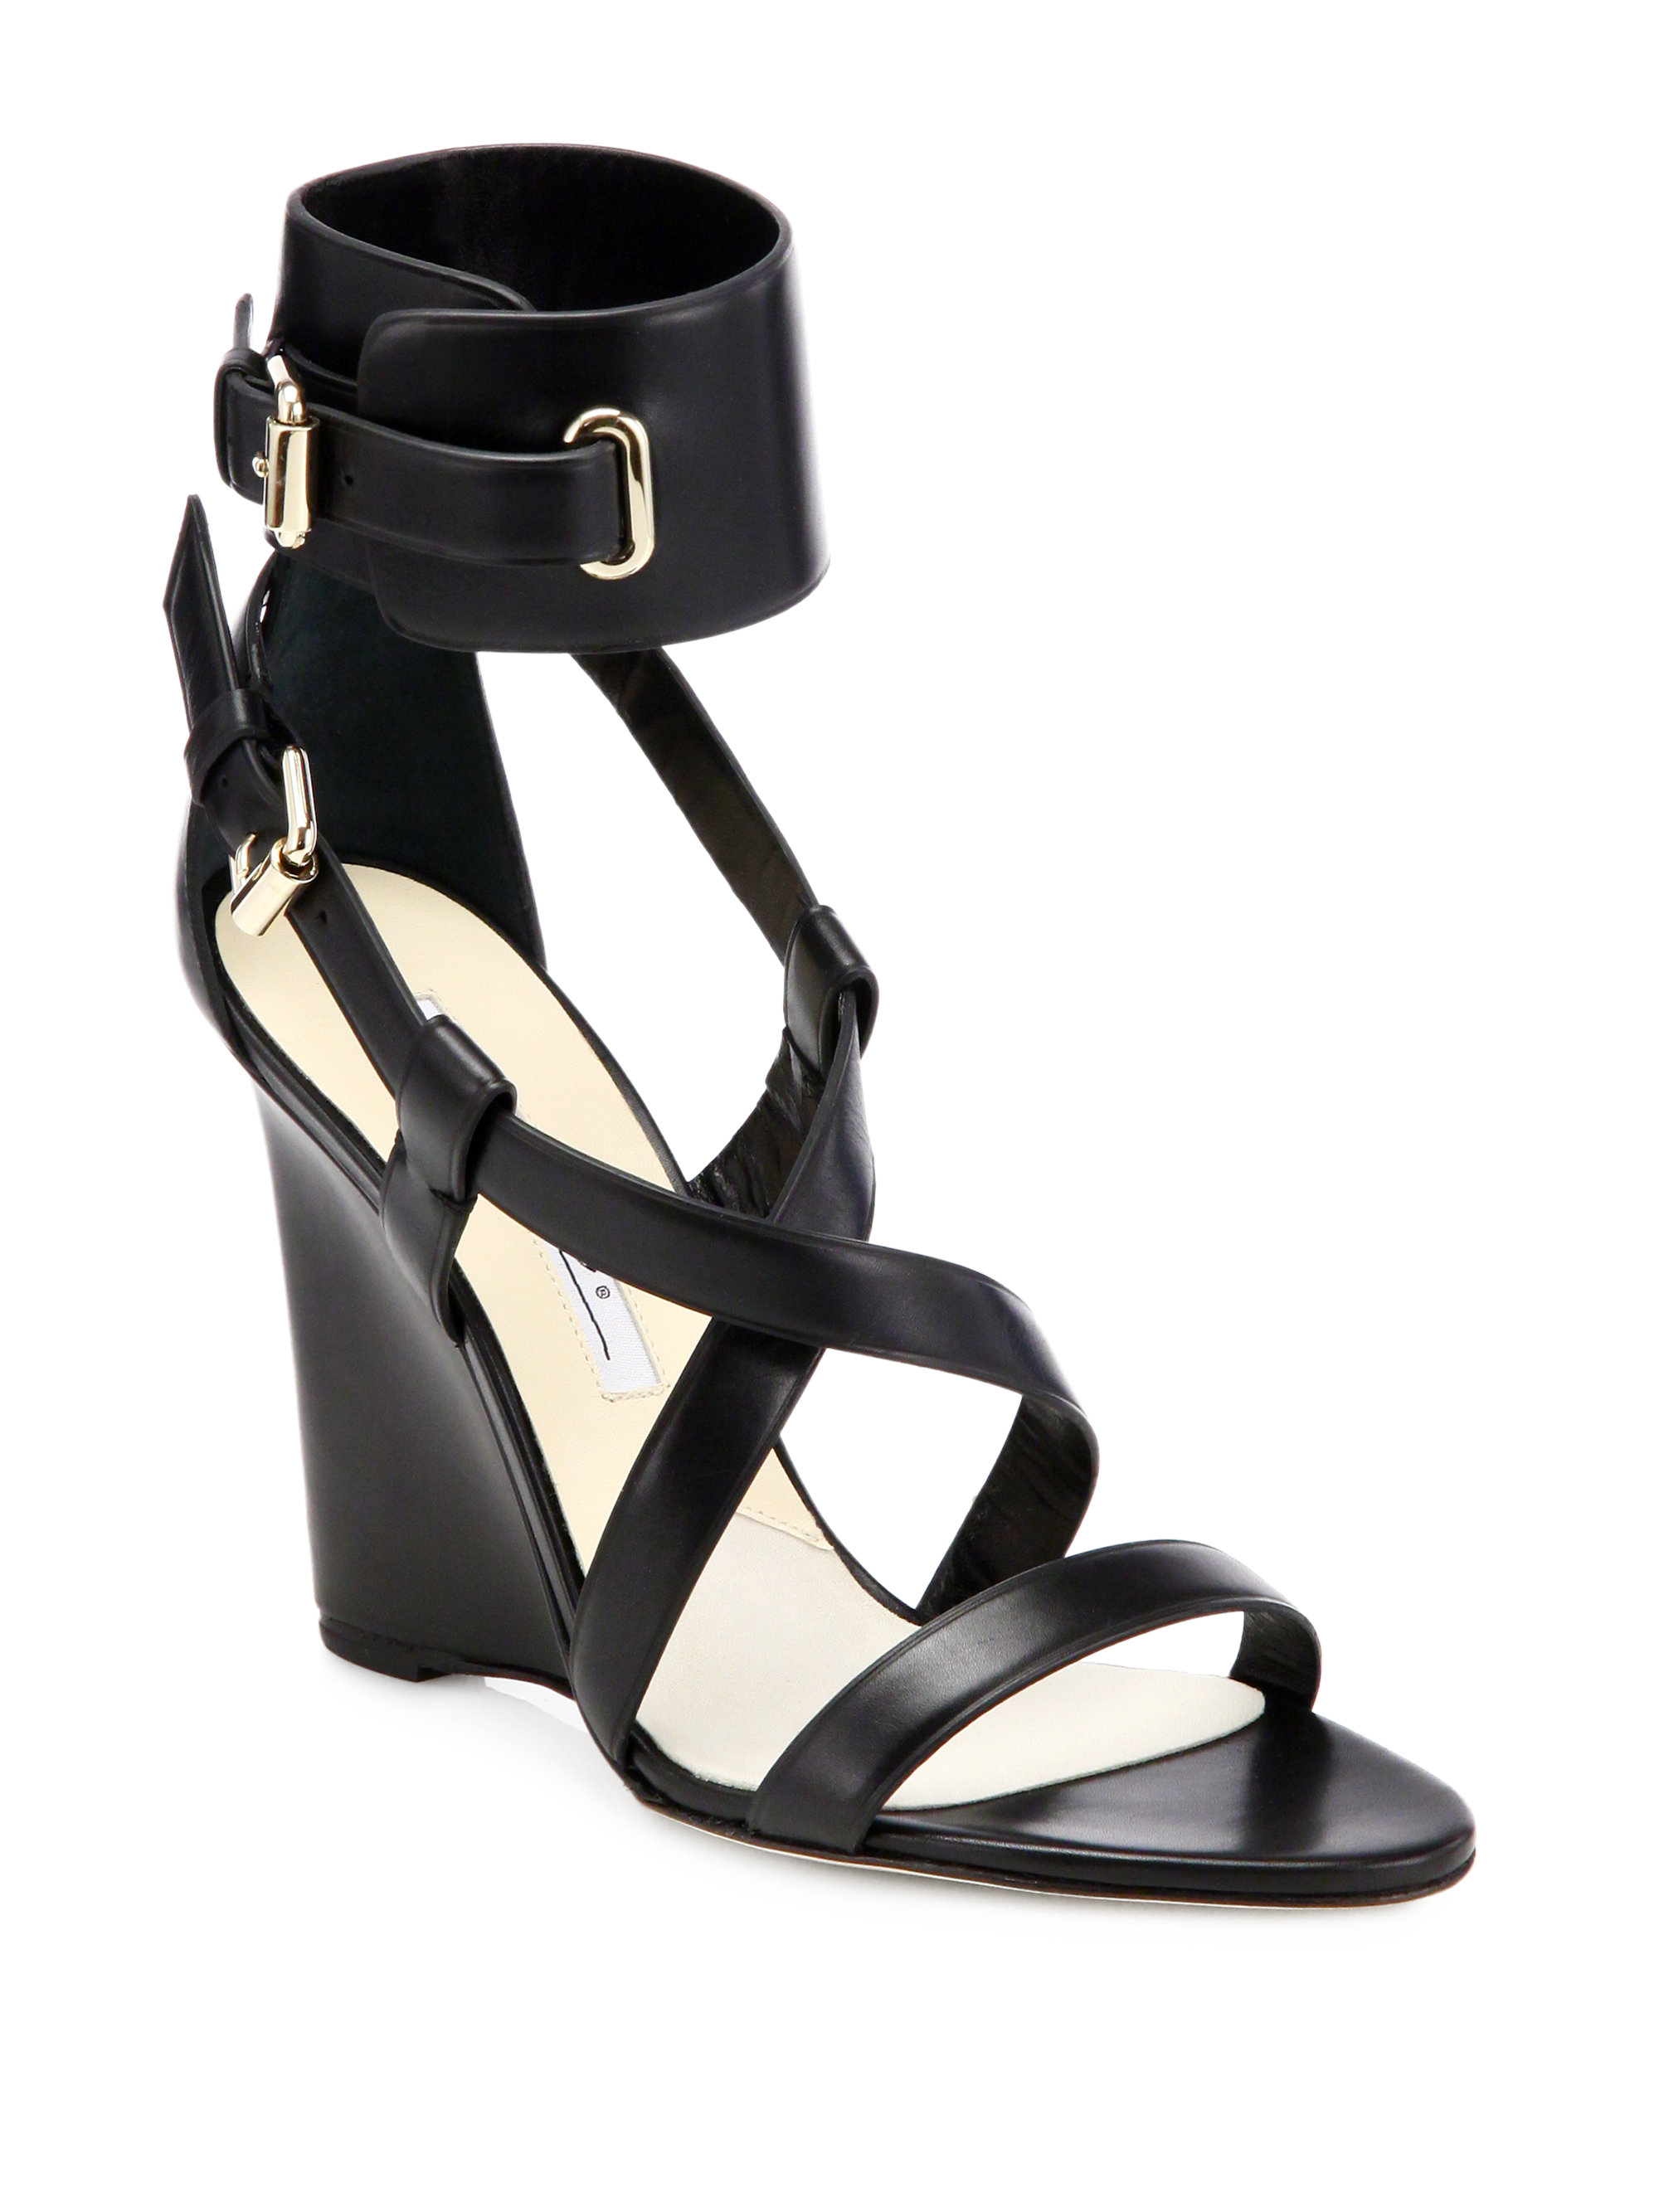 brian atwood hegemone leather cuff sandals in black lyst